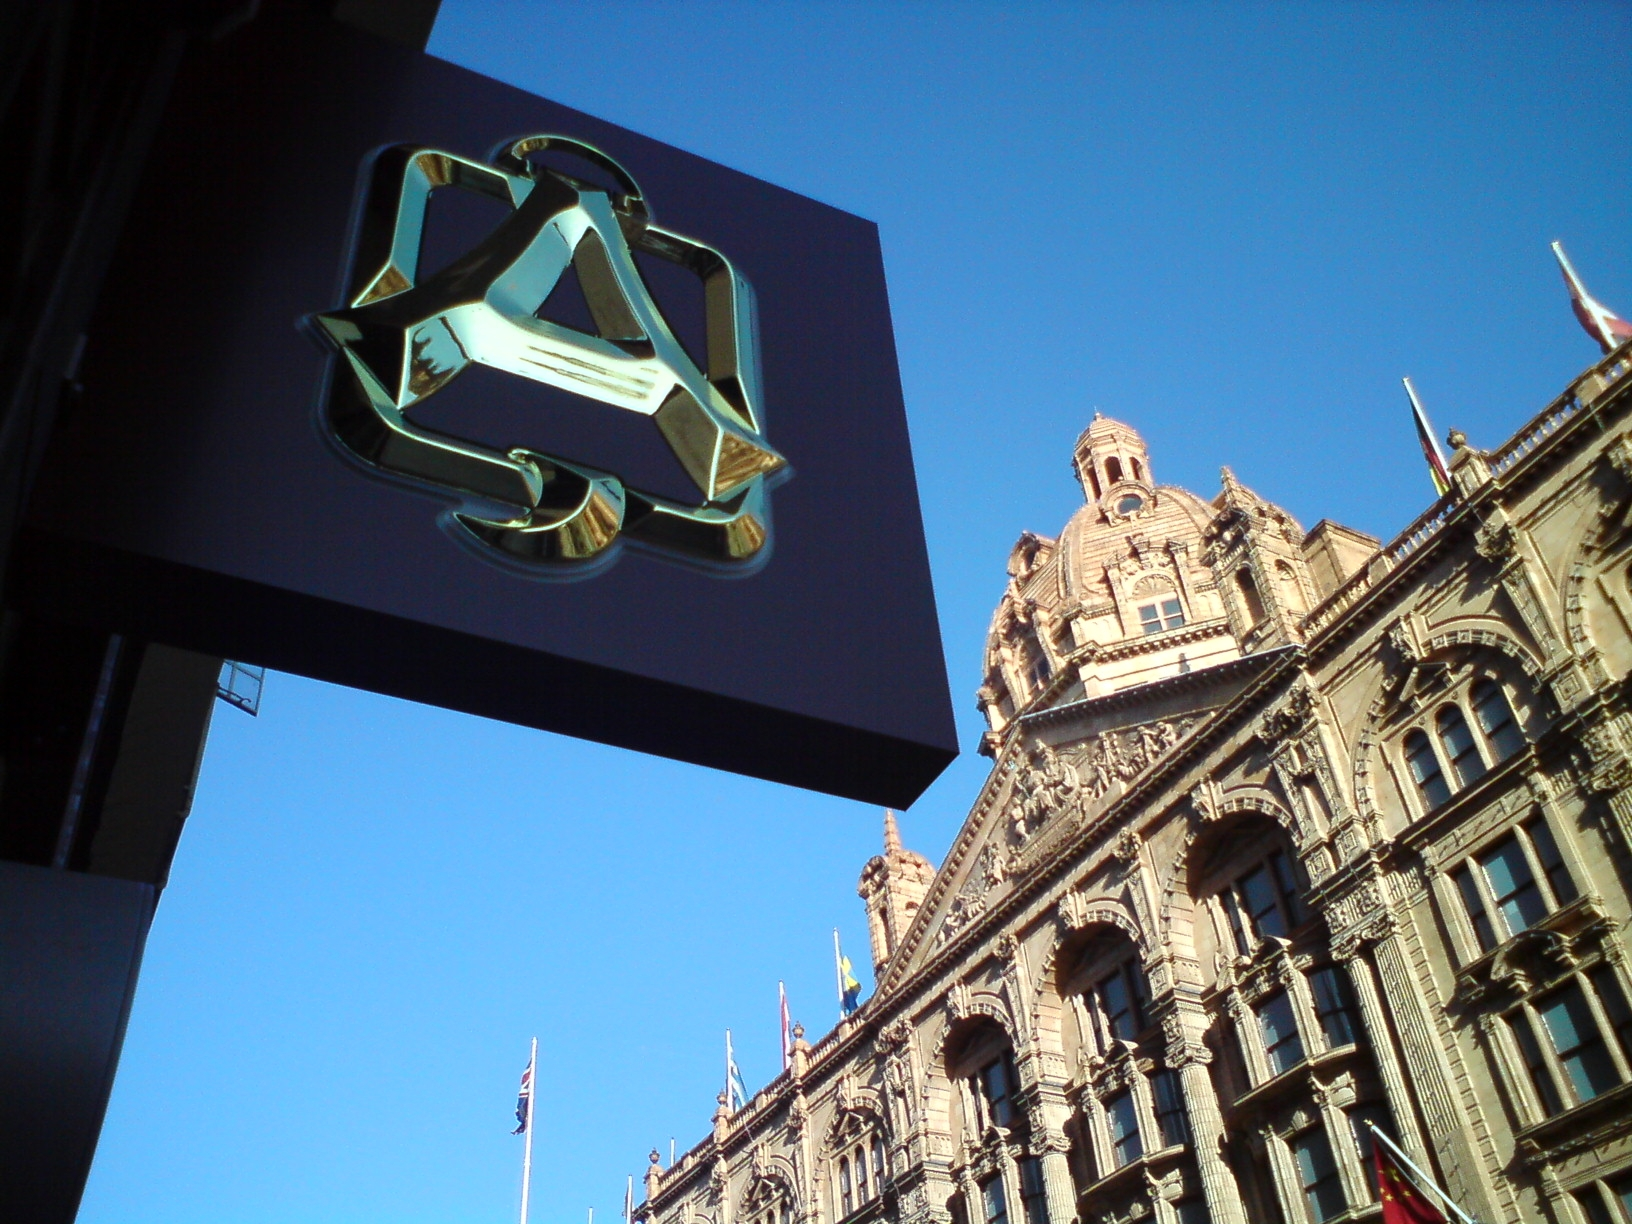 alquershi new A projecting Sign catches the eye of passers by & can be effective adverts for your business.Call today for a quote from E-Signs London.